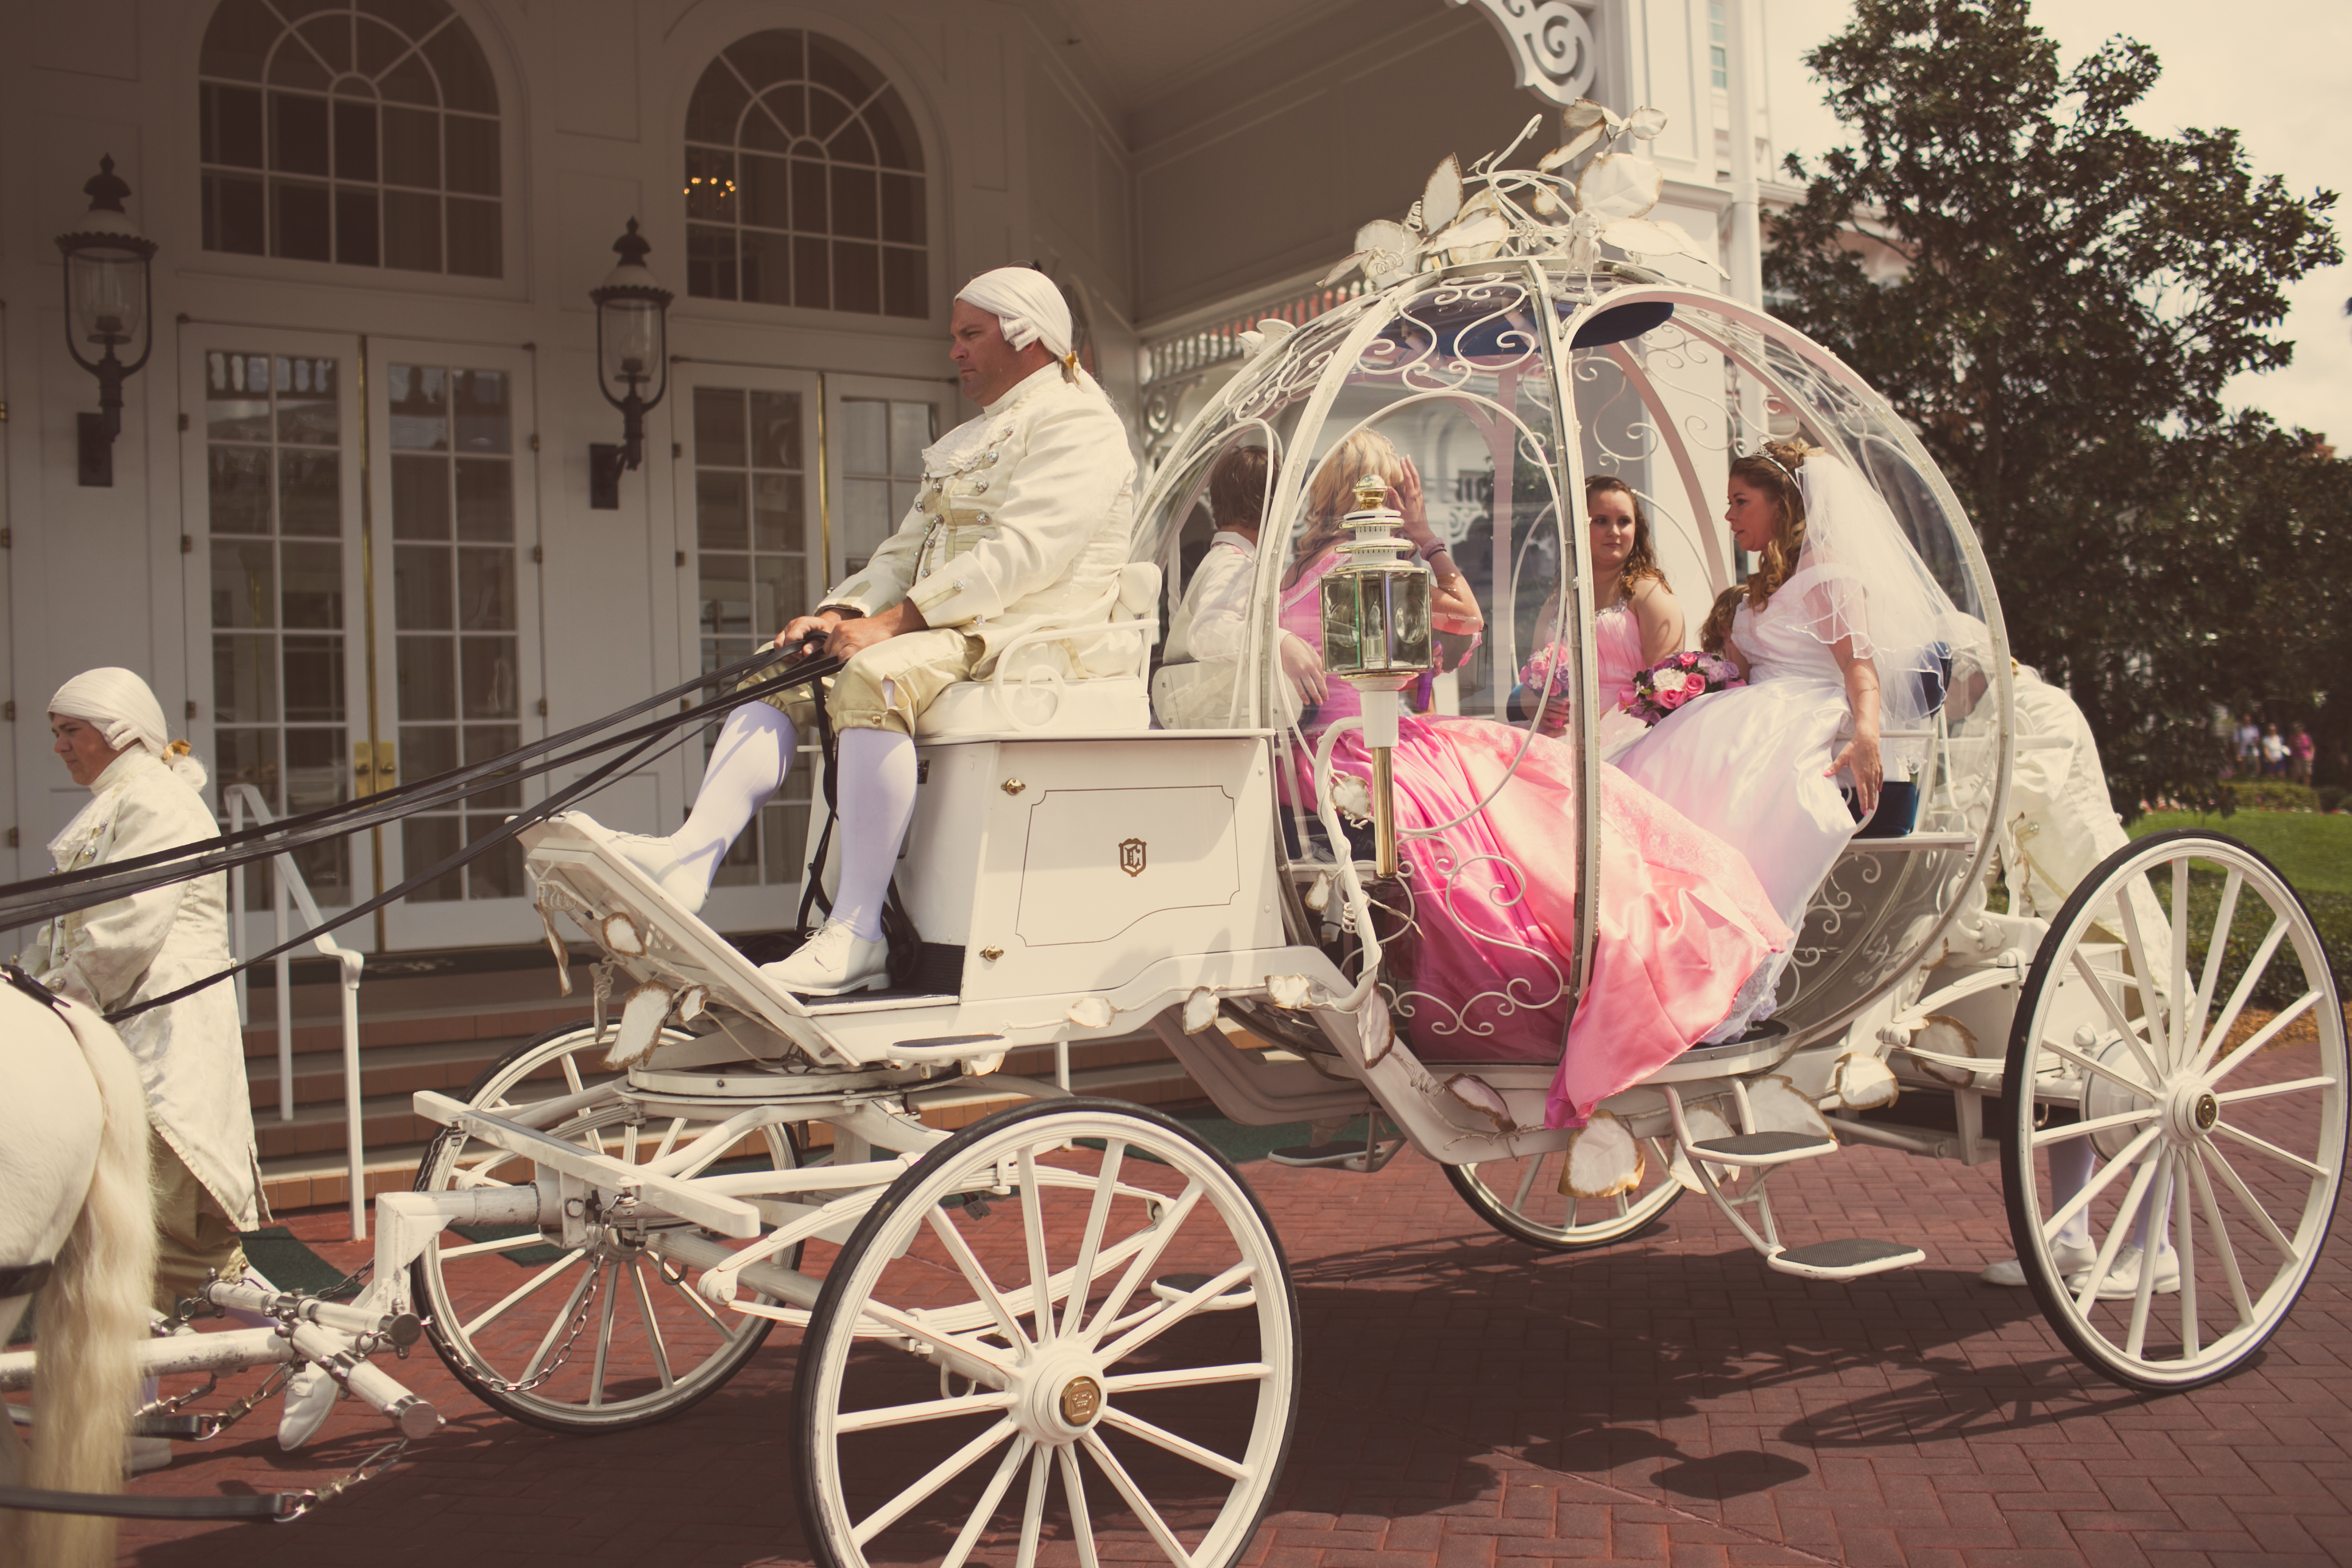 Disney Themed Wedding At The Grand Floridian Resort And Spa